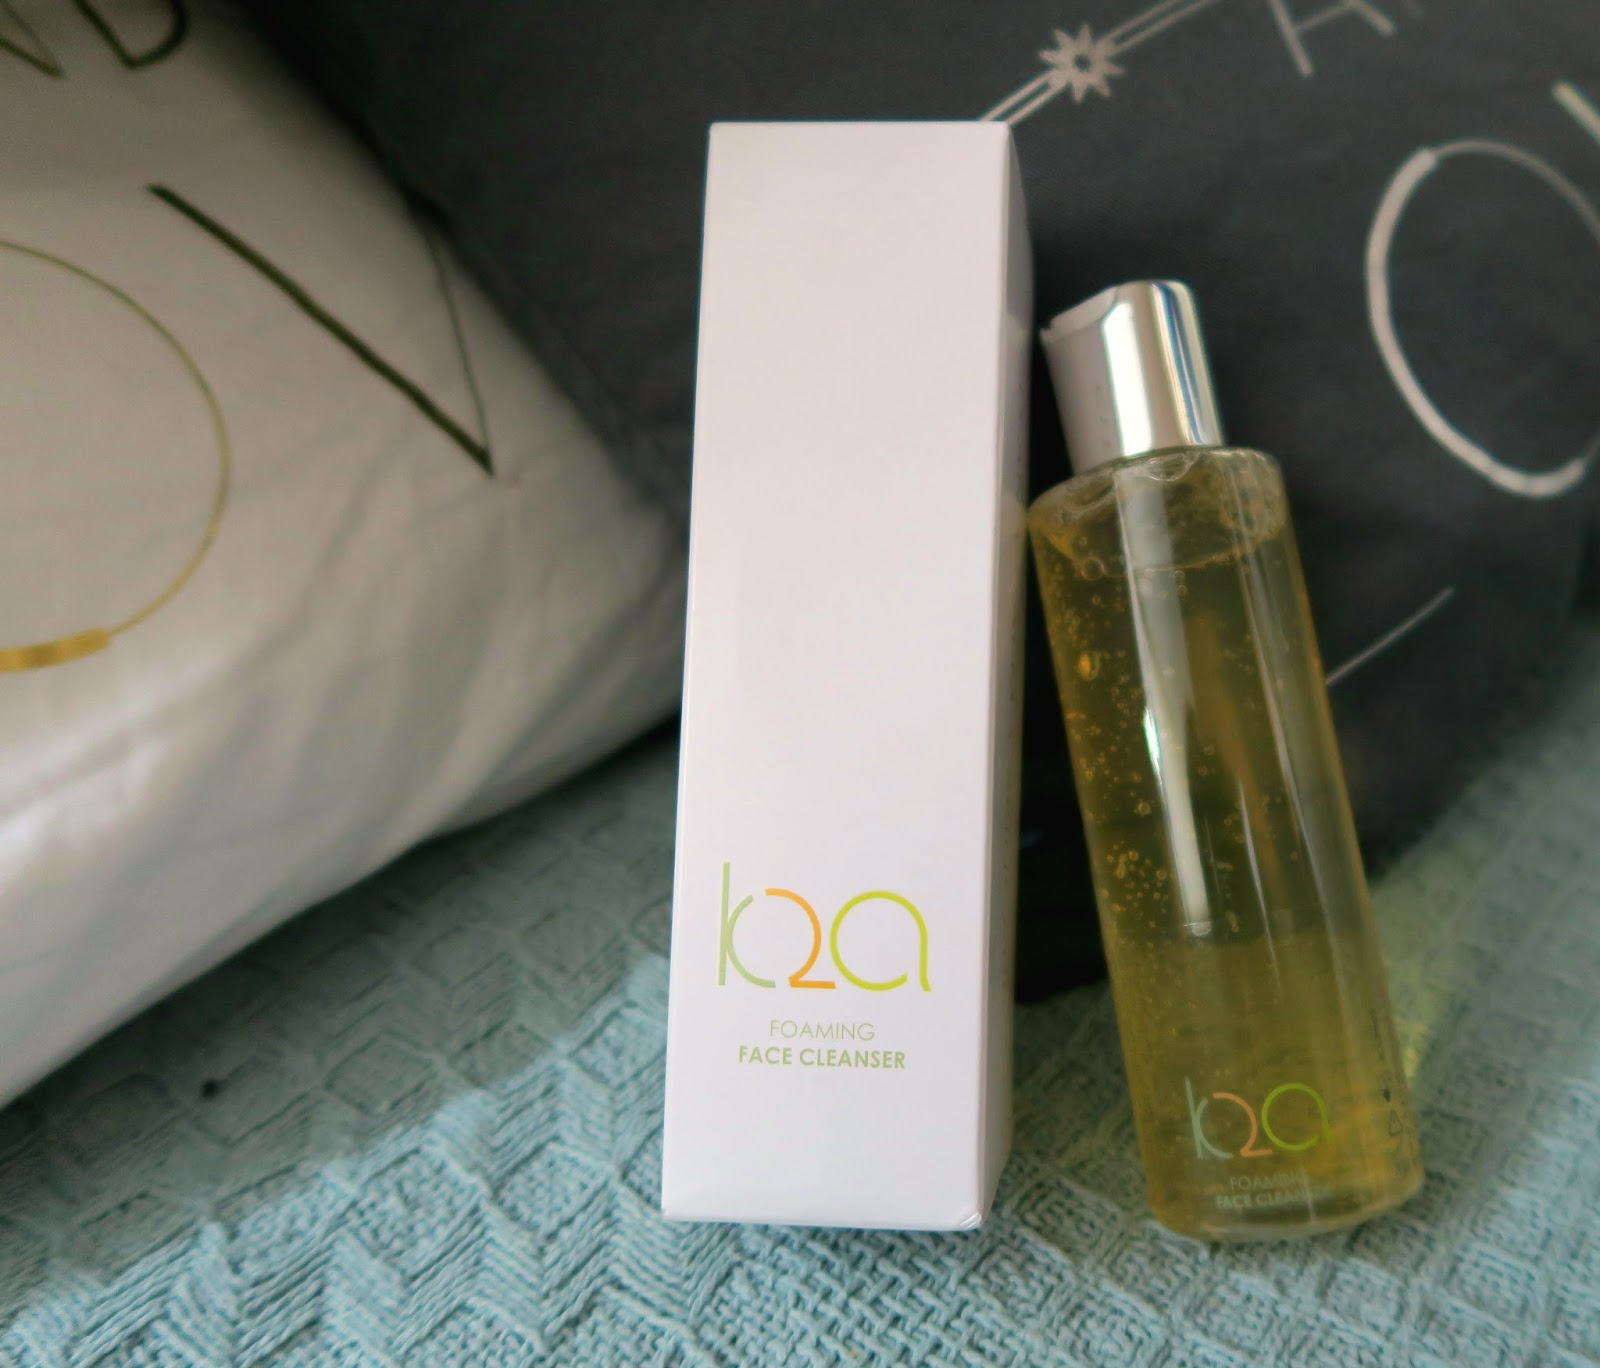 Cleanser and packaging